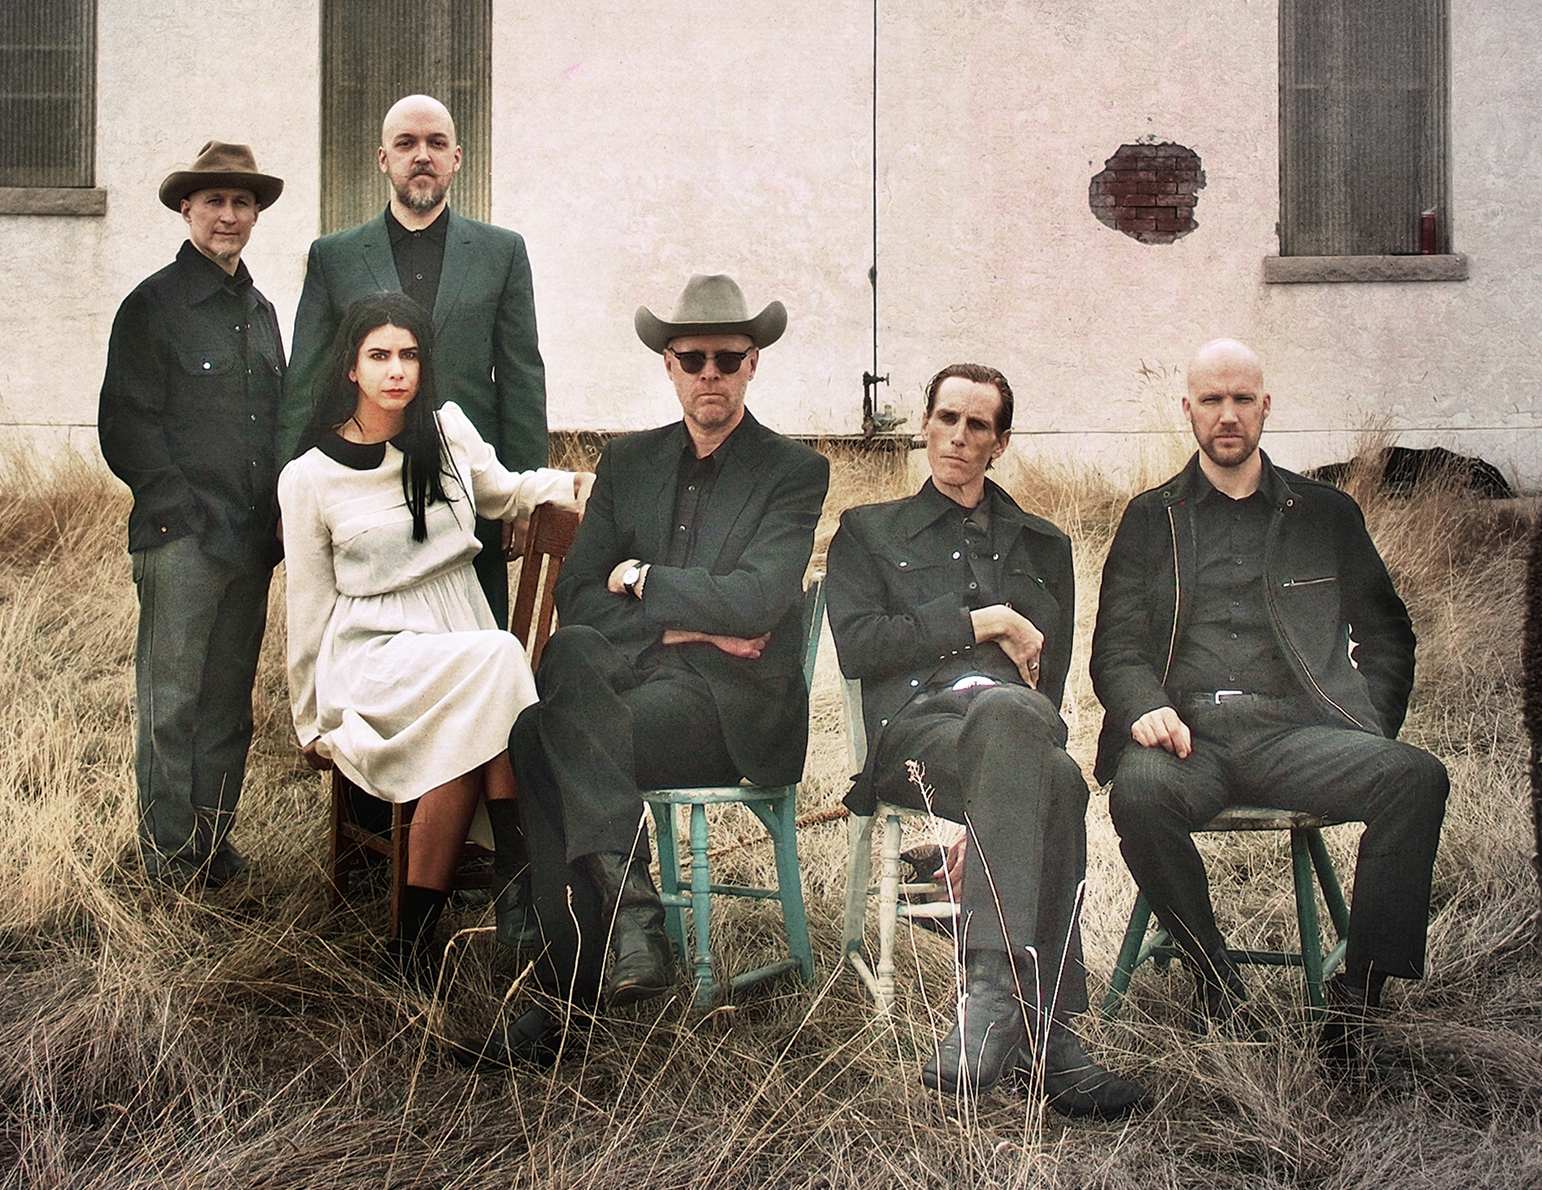 SLIM CESSNA'S AUTO CLUB LOOKS BACK ON 'CIPHER,' 'MORE RELEVANT NOW THAN EVER'